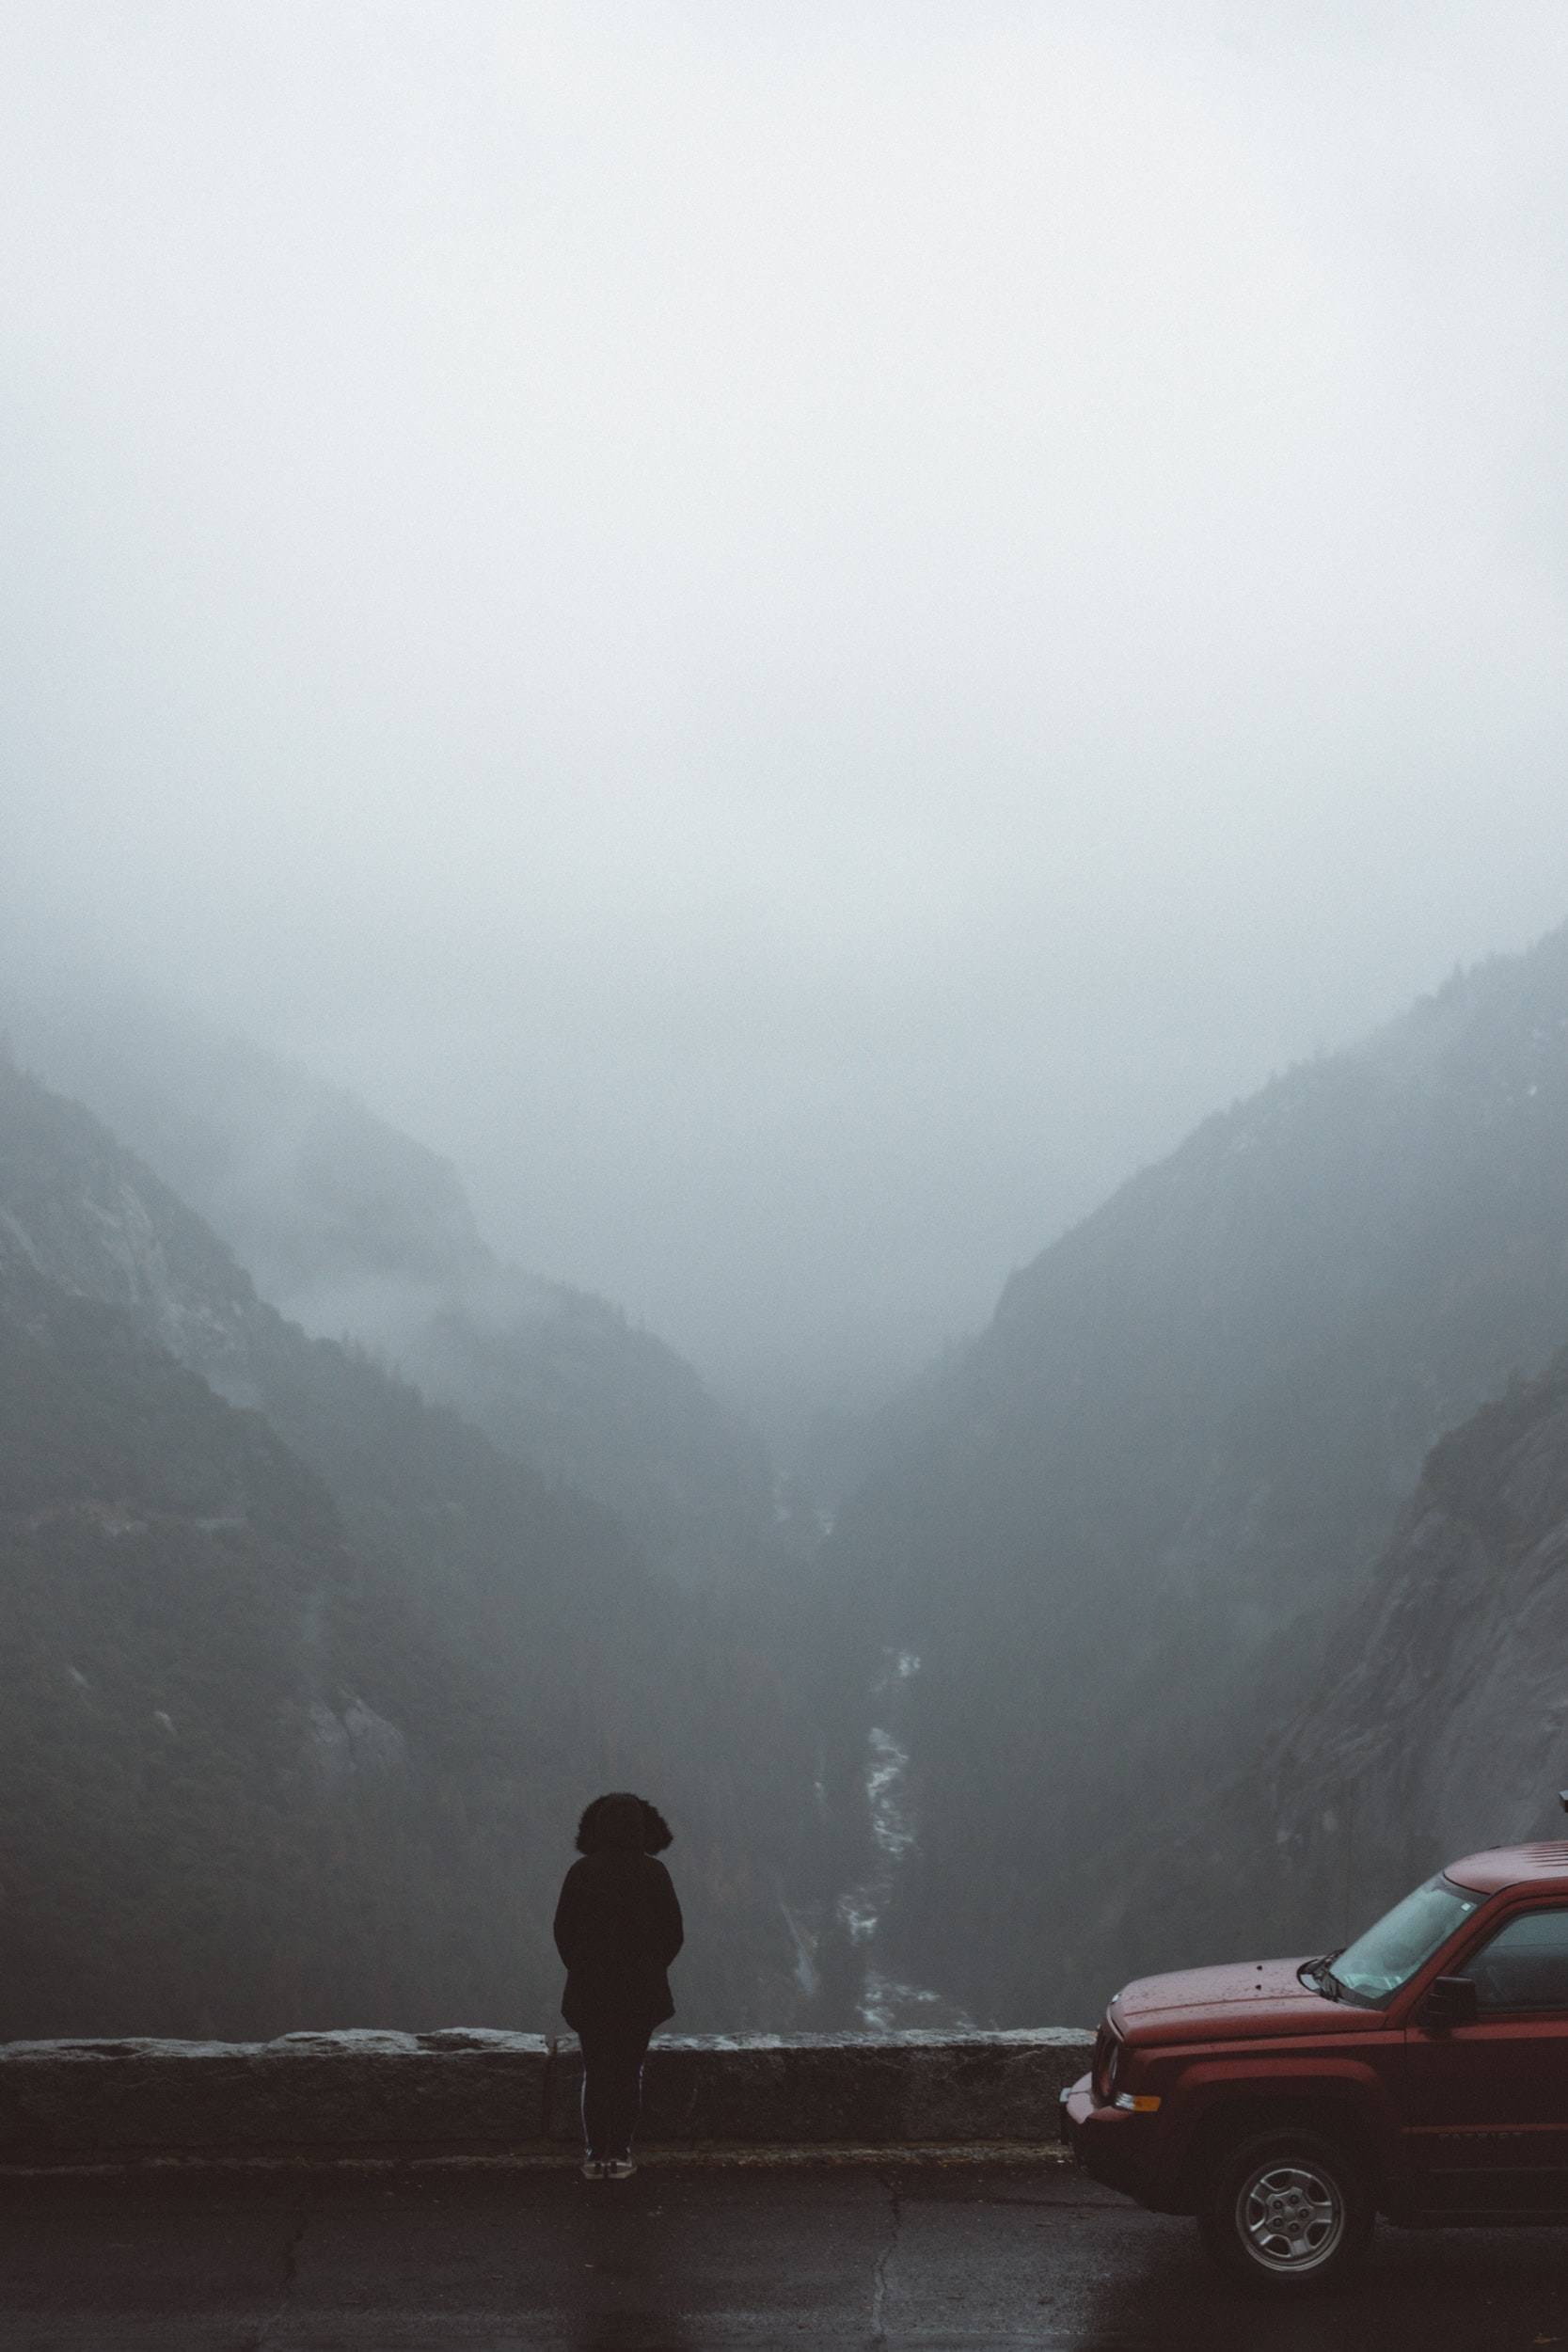 Stopped on the side of a road overlooking foggy mountainscape